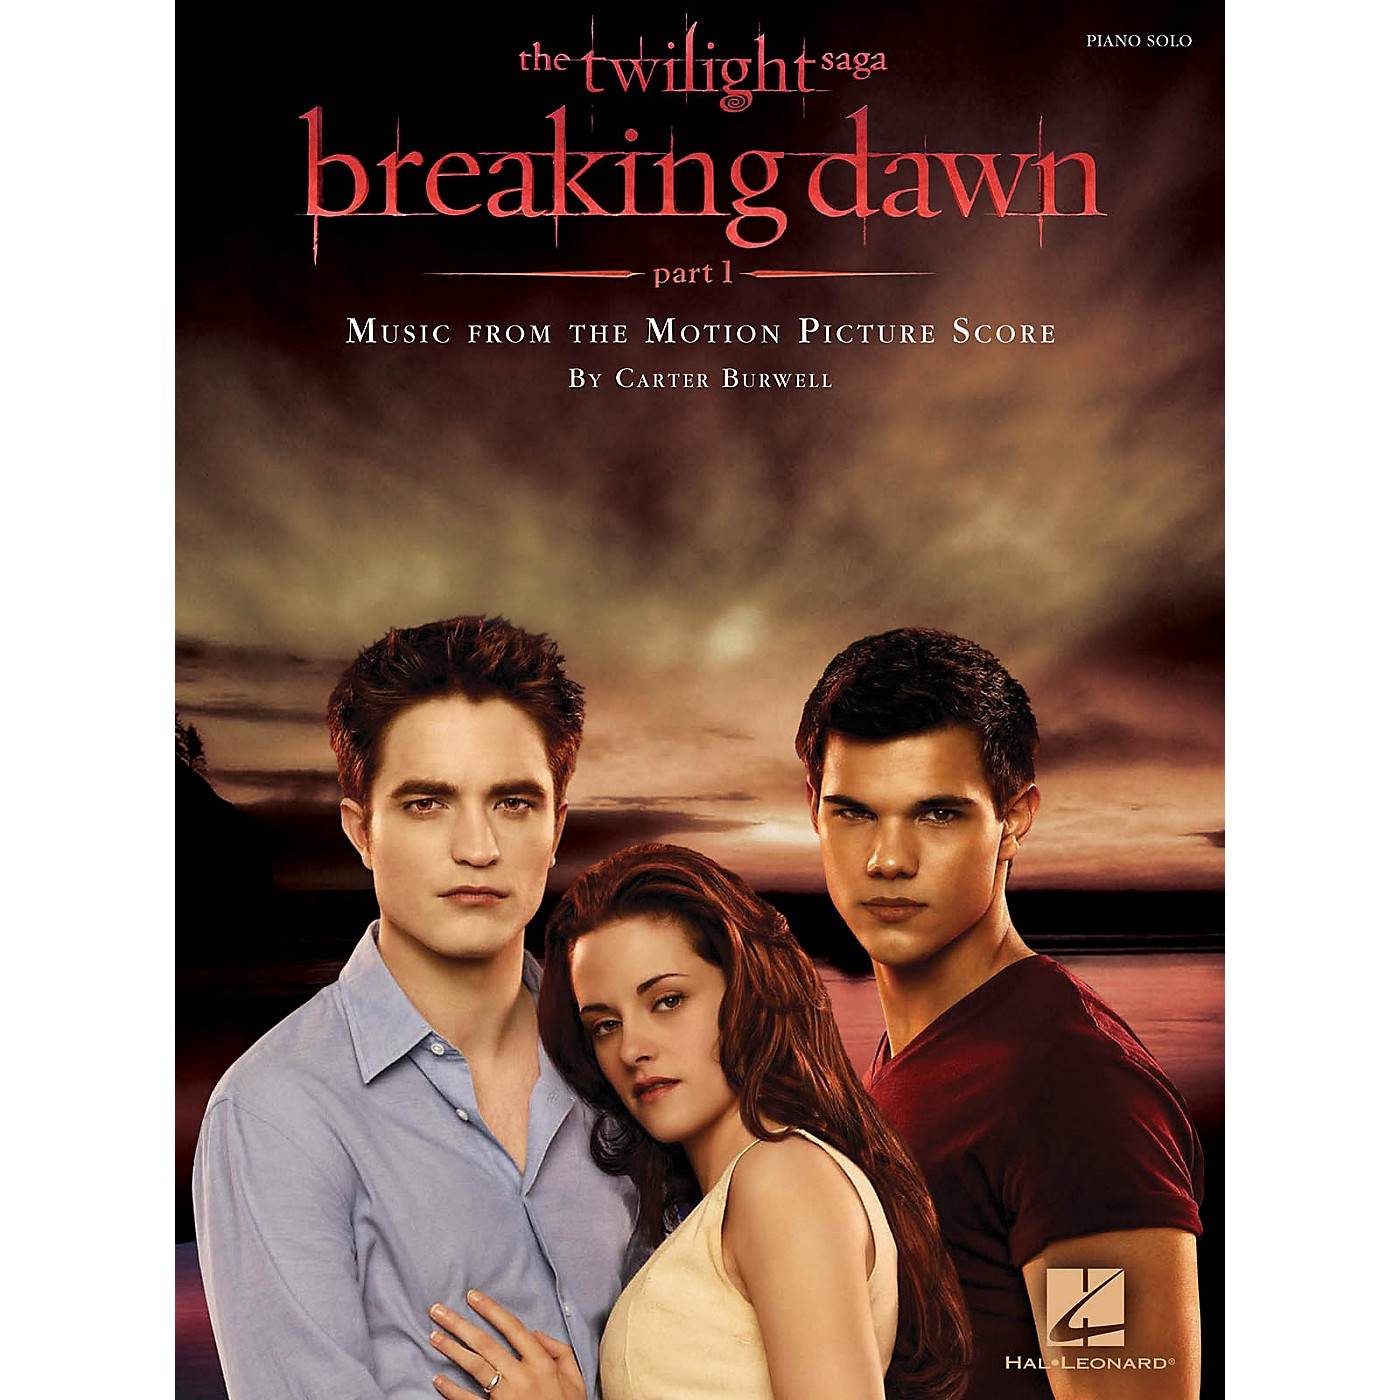 Hal Leonard Twilight: Breaking Dawn Part 1 - Music From The Motion Picture Score For Piano Solo thumbnail